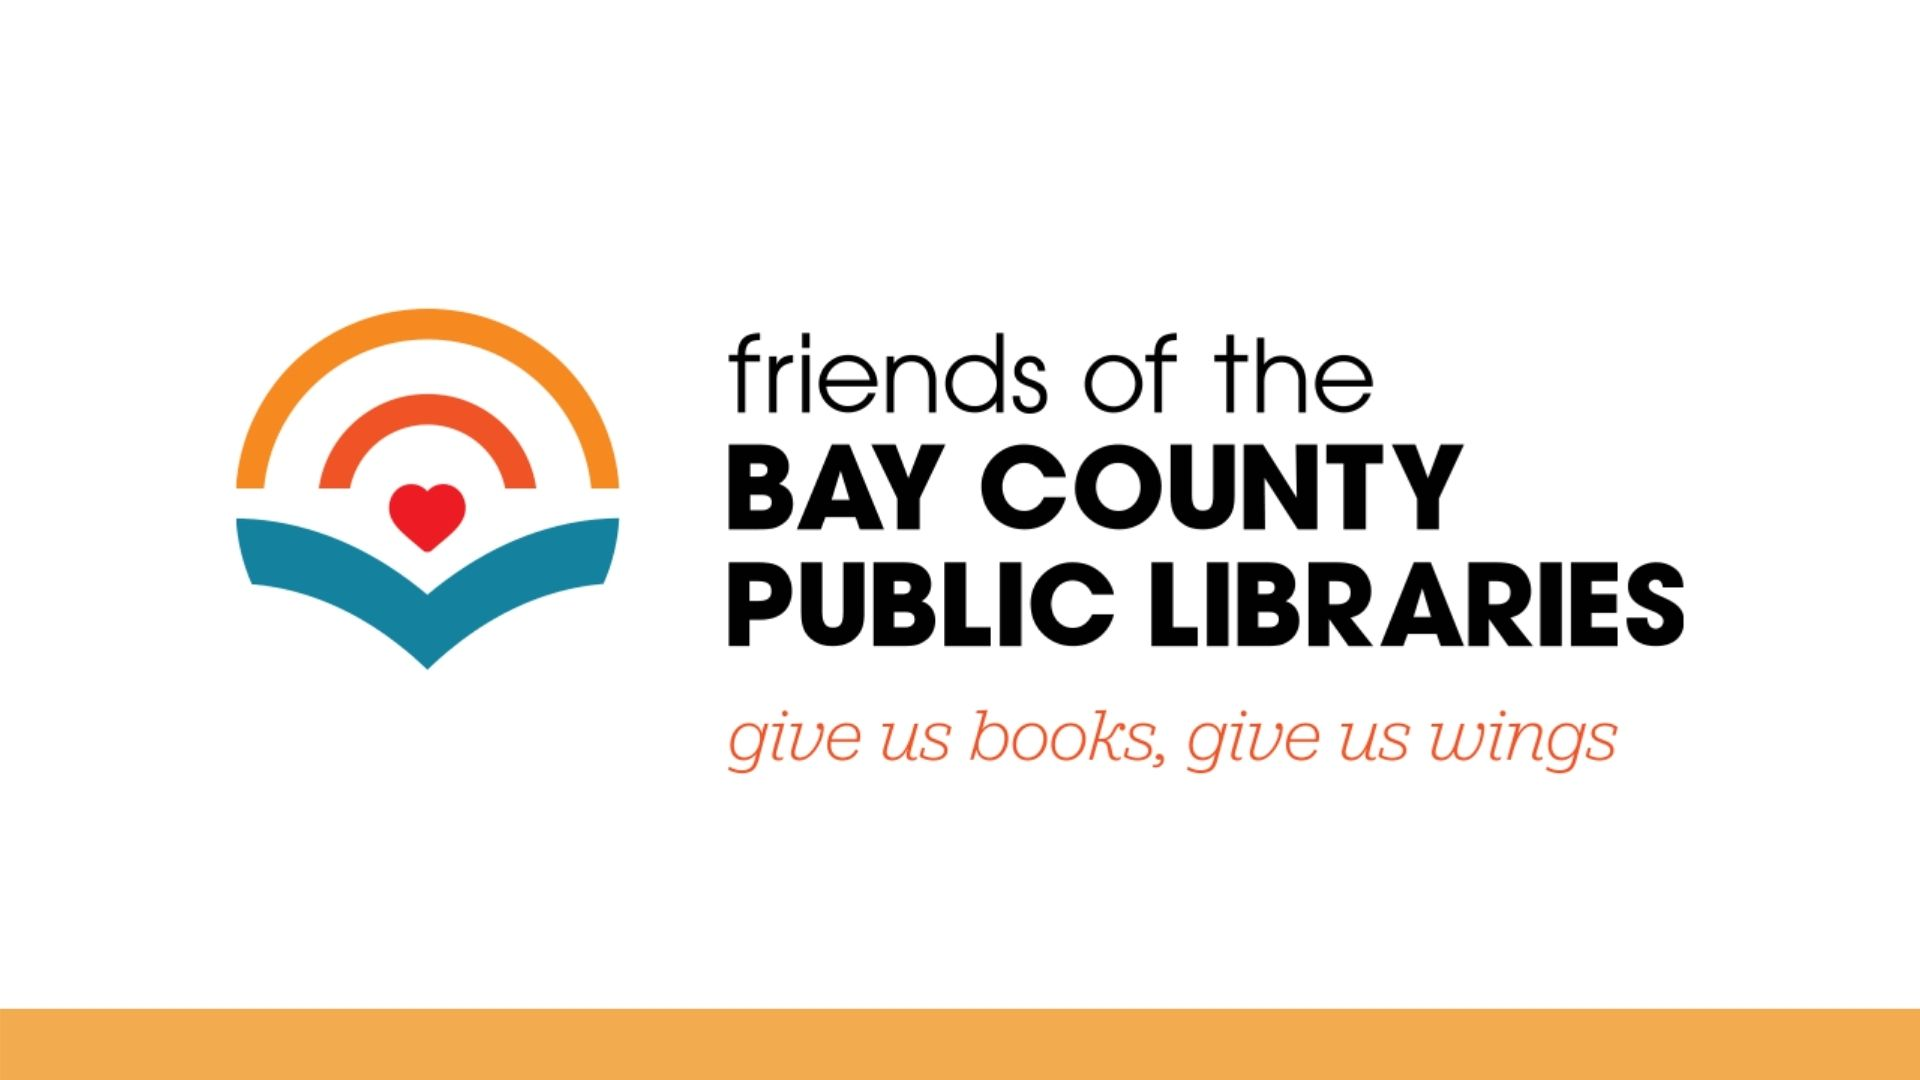 Friends of the Bay County Public Libraries